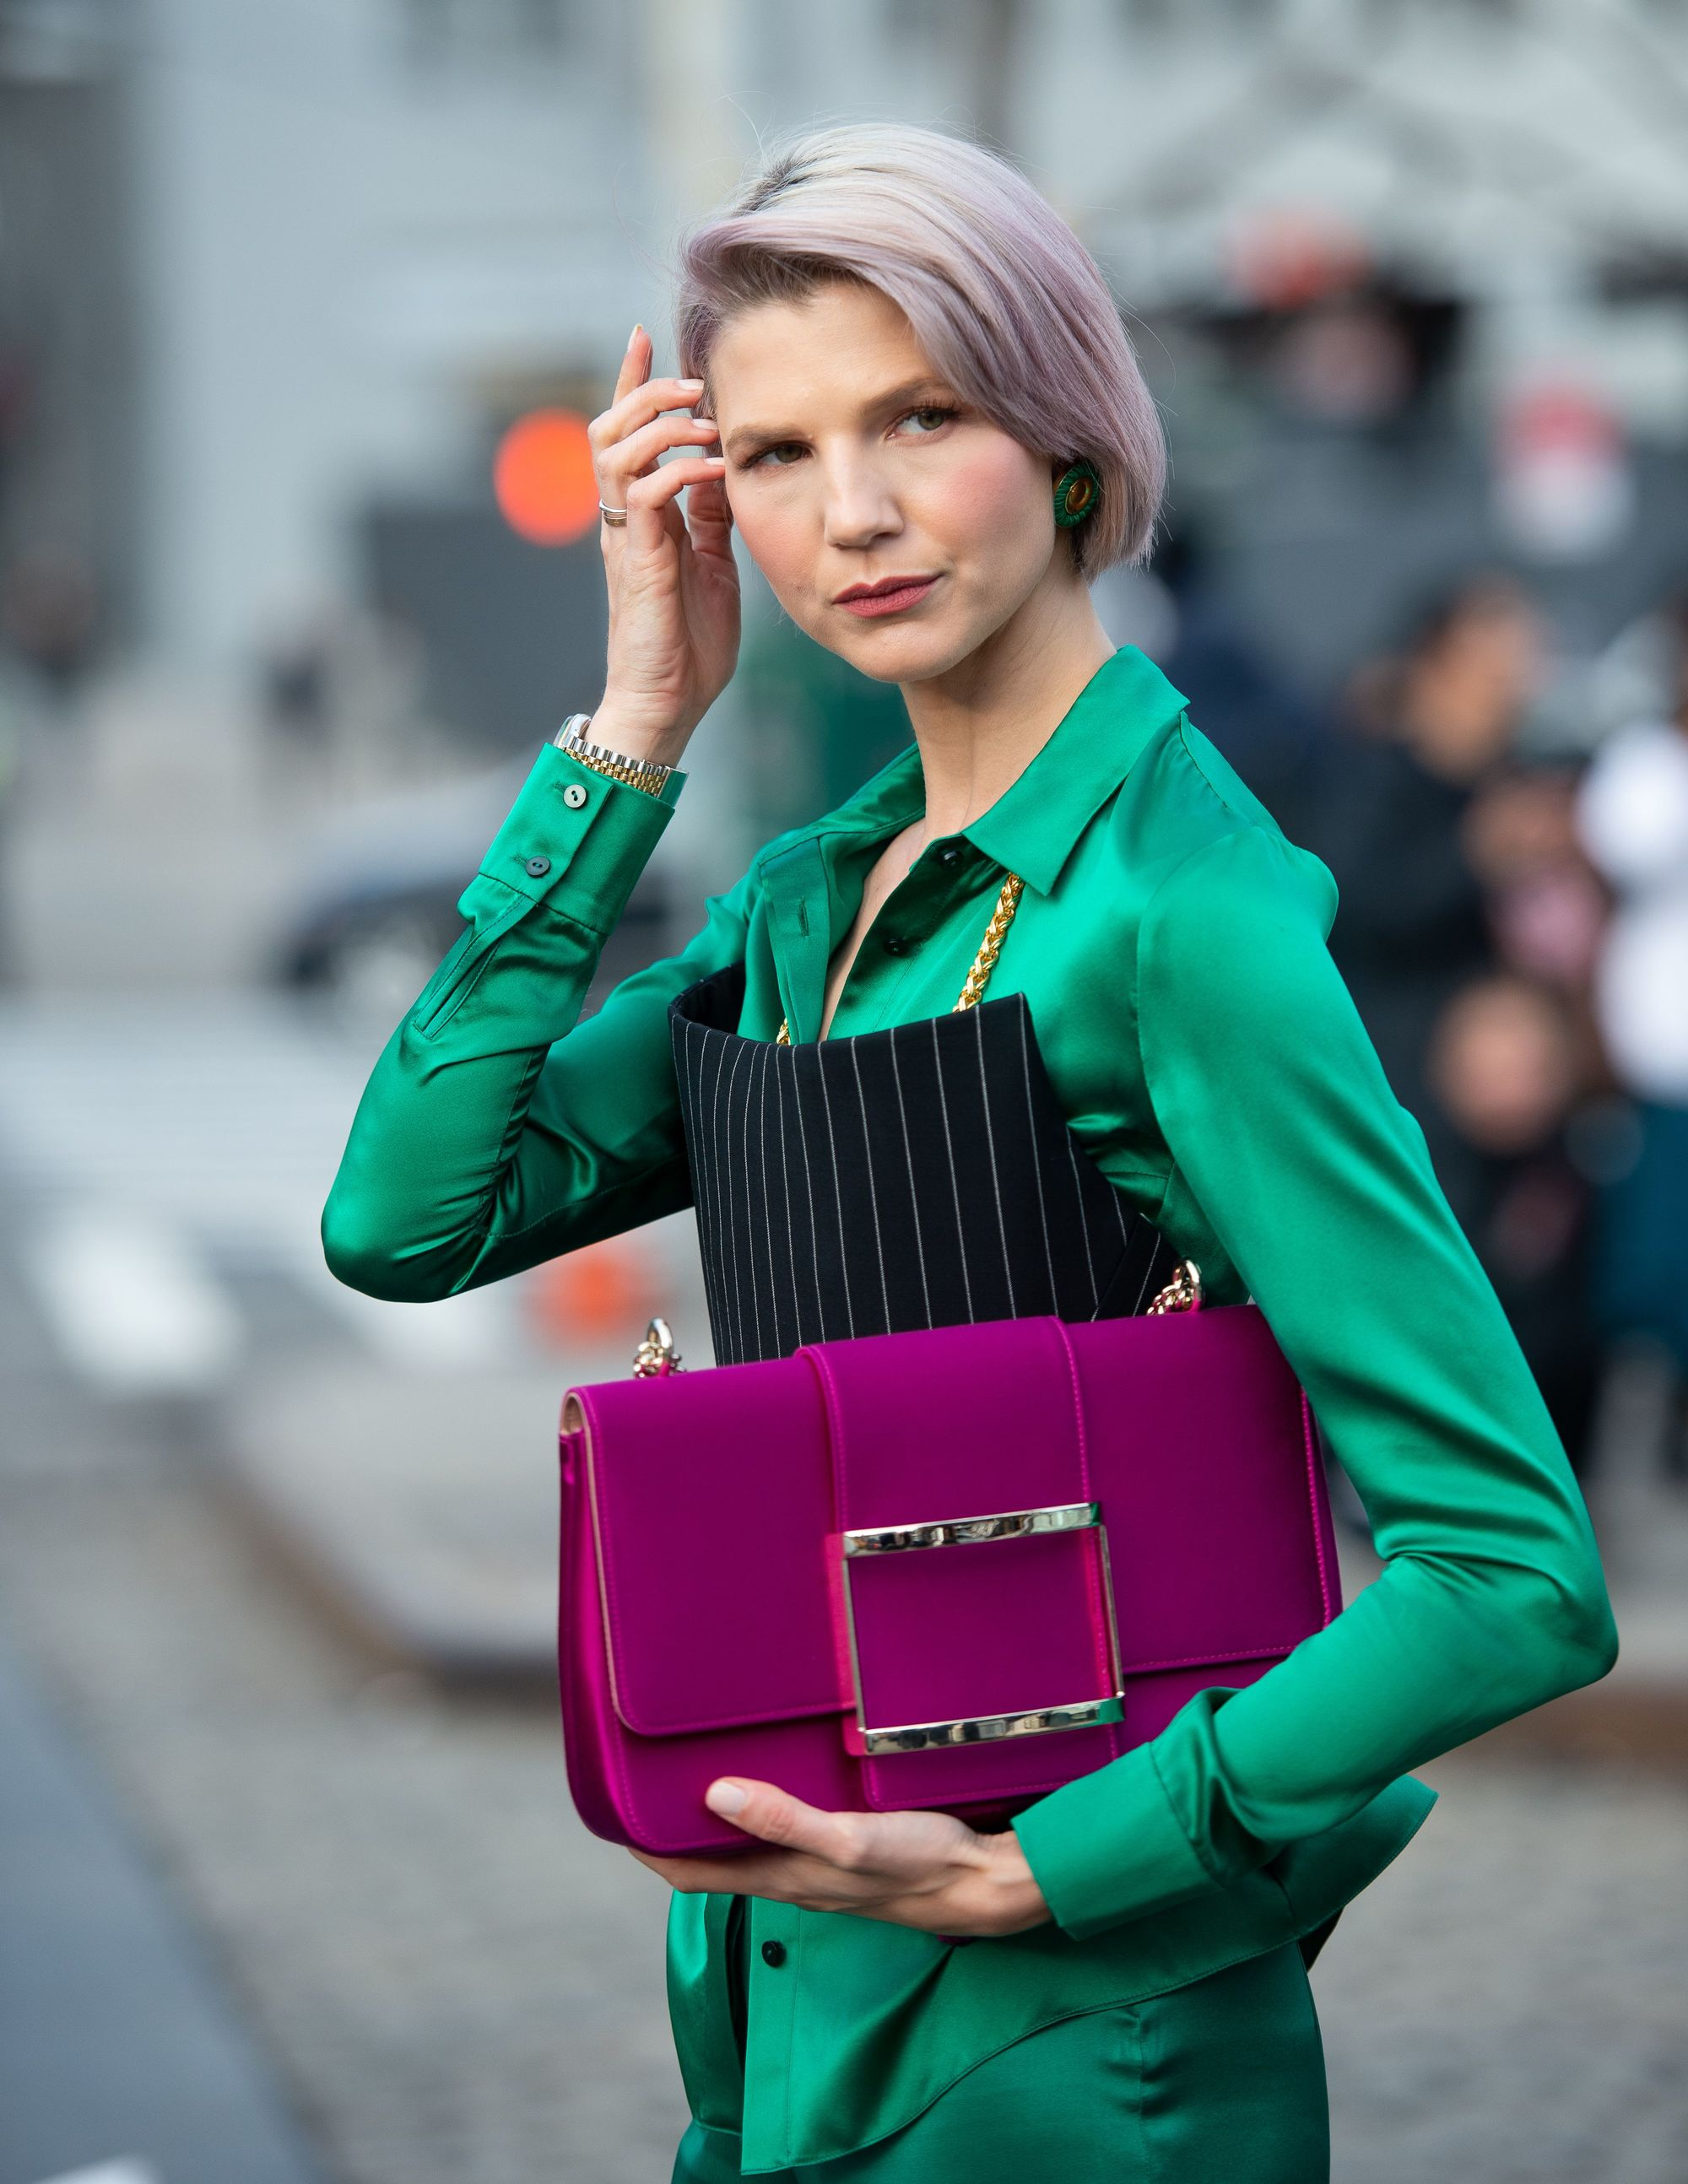 2019 hair colour trends: Street style shot of a woman with a silvery lilac bob, wearing a green trench coat and holding a purple bag